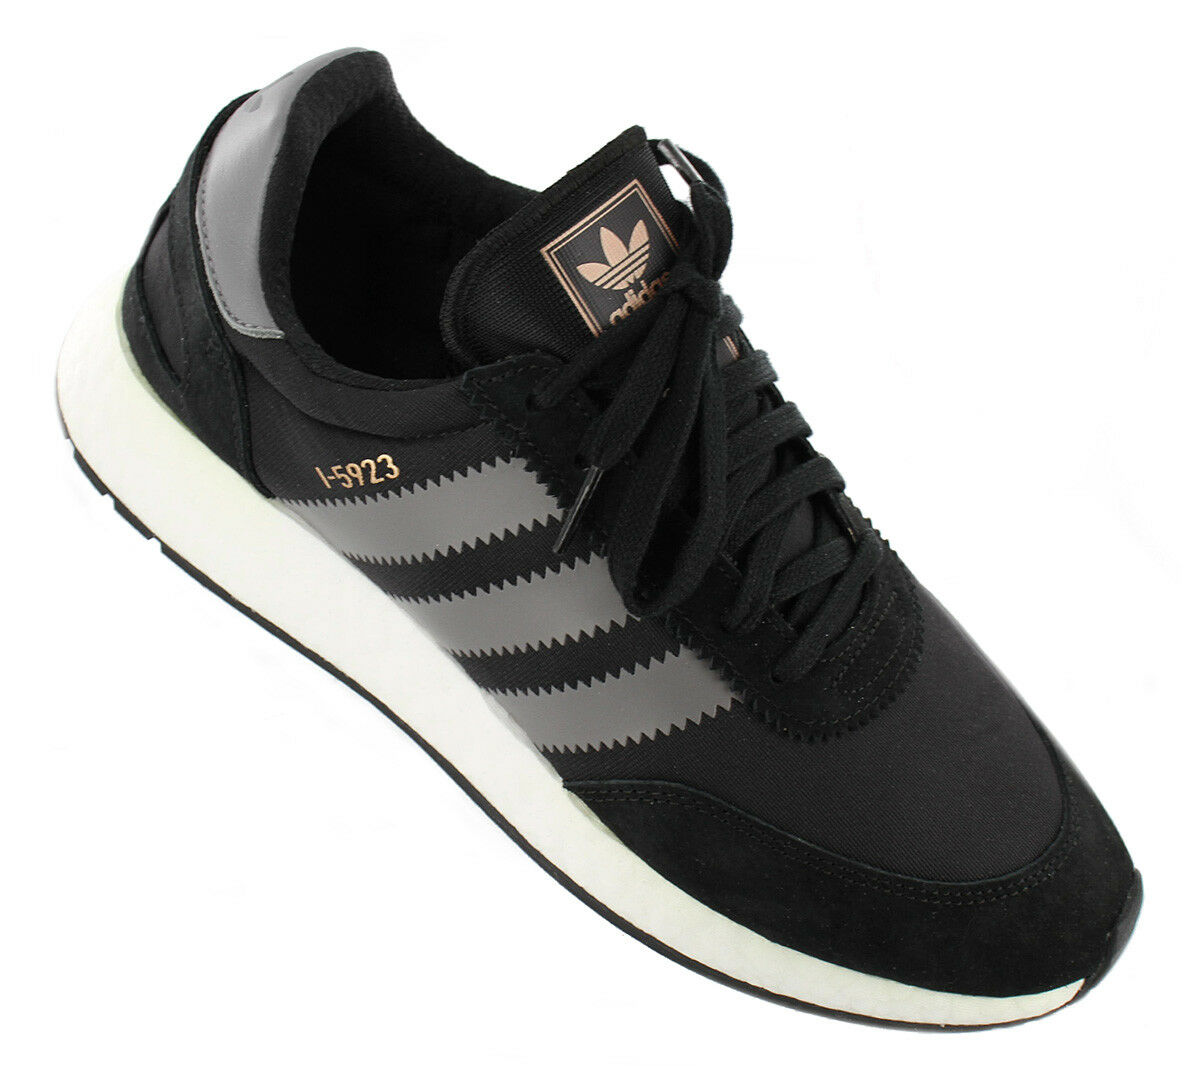 NEW adidas Originals INIKI I-5923 Boost B27872 Men´s shoes Trainers Sneakers SAL